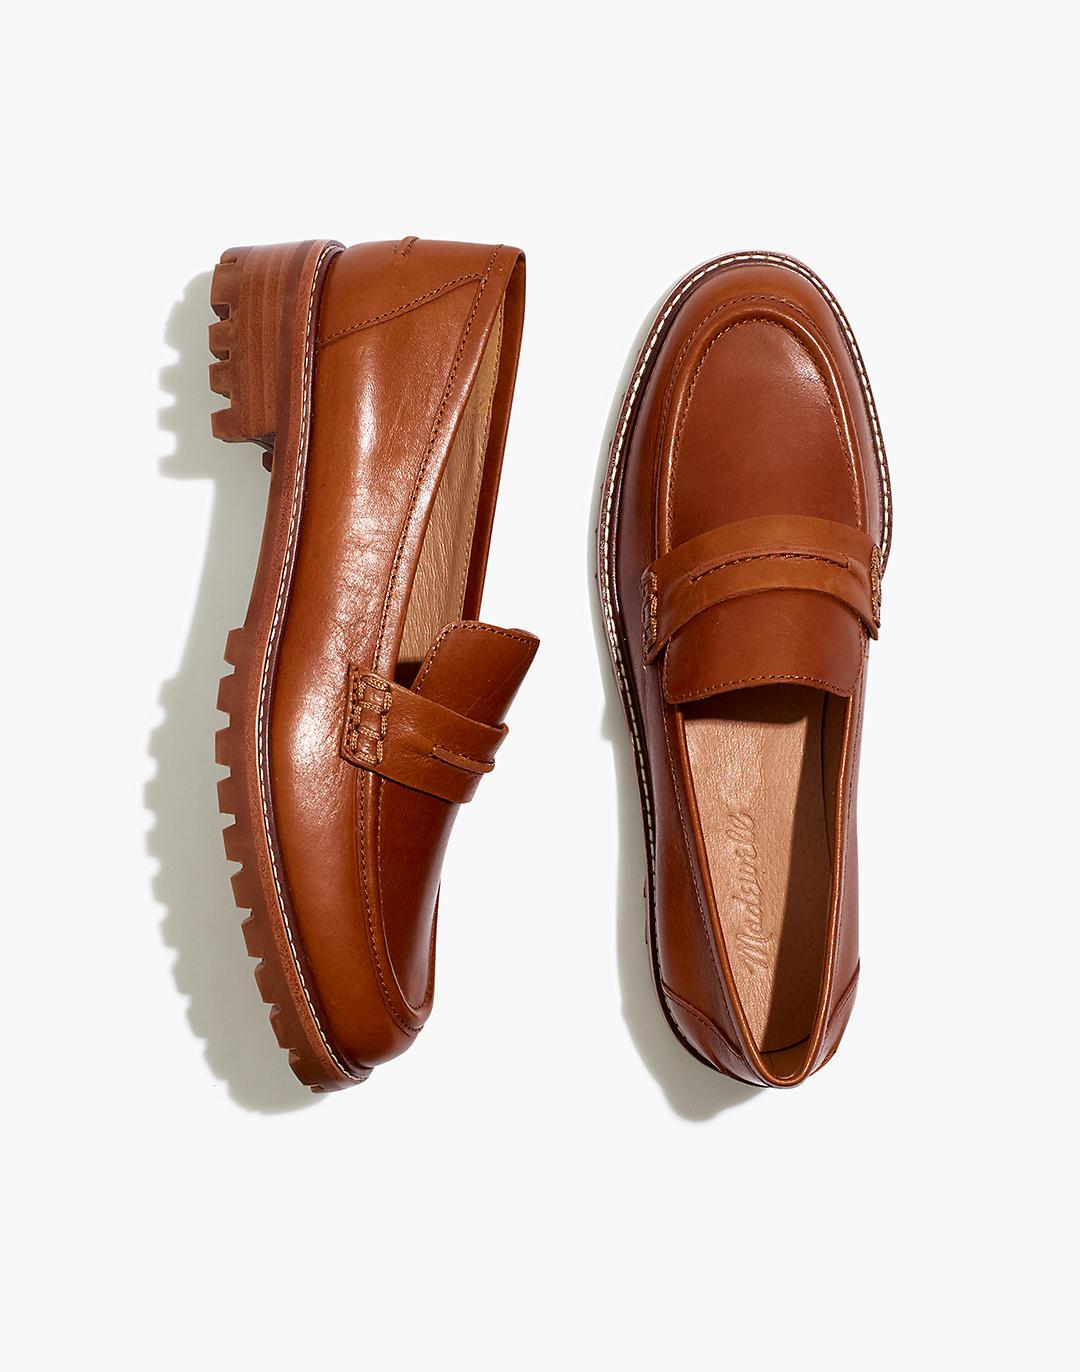 The Corinne Lugsole Loafer